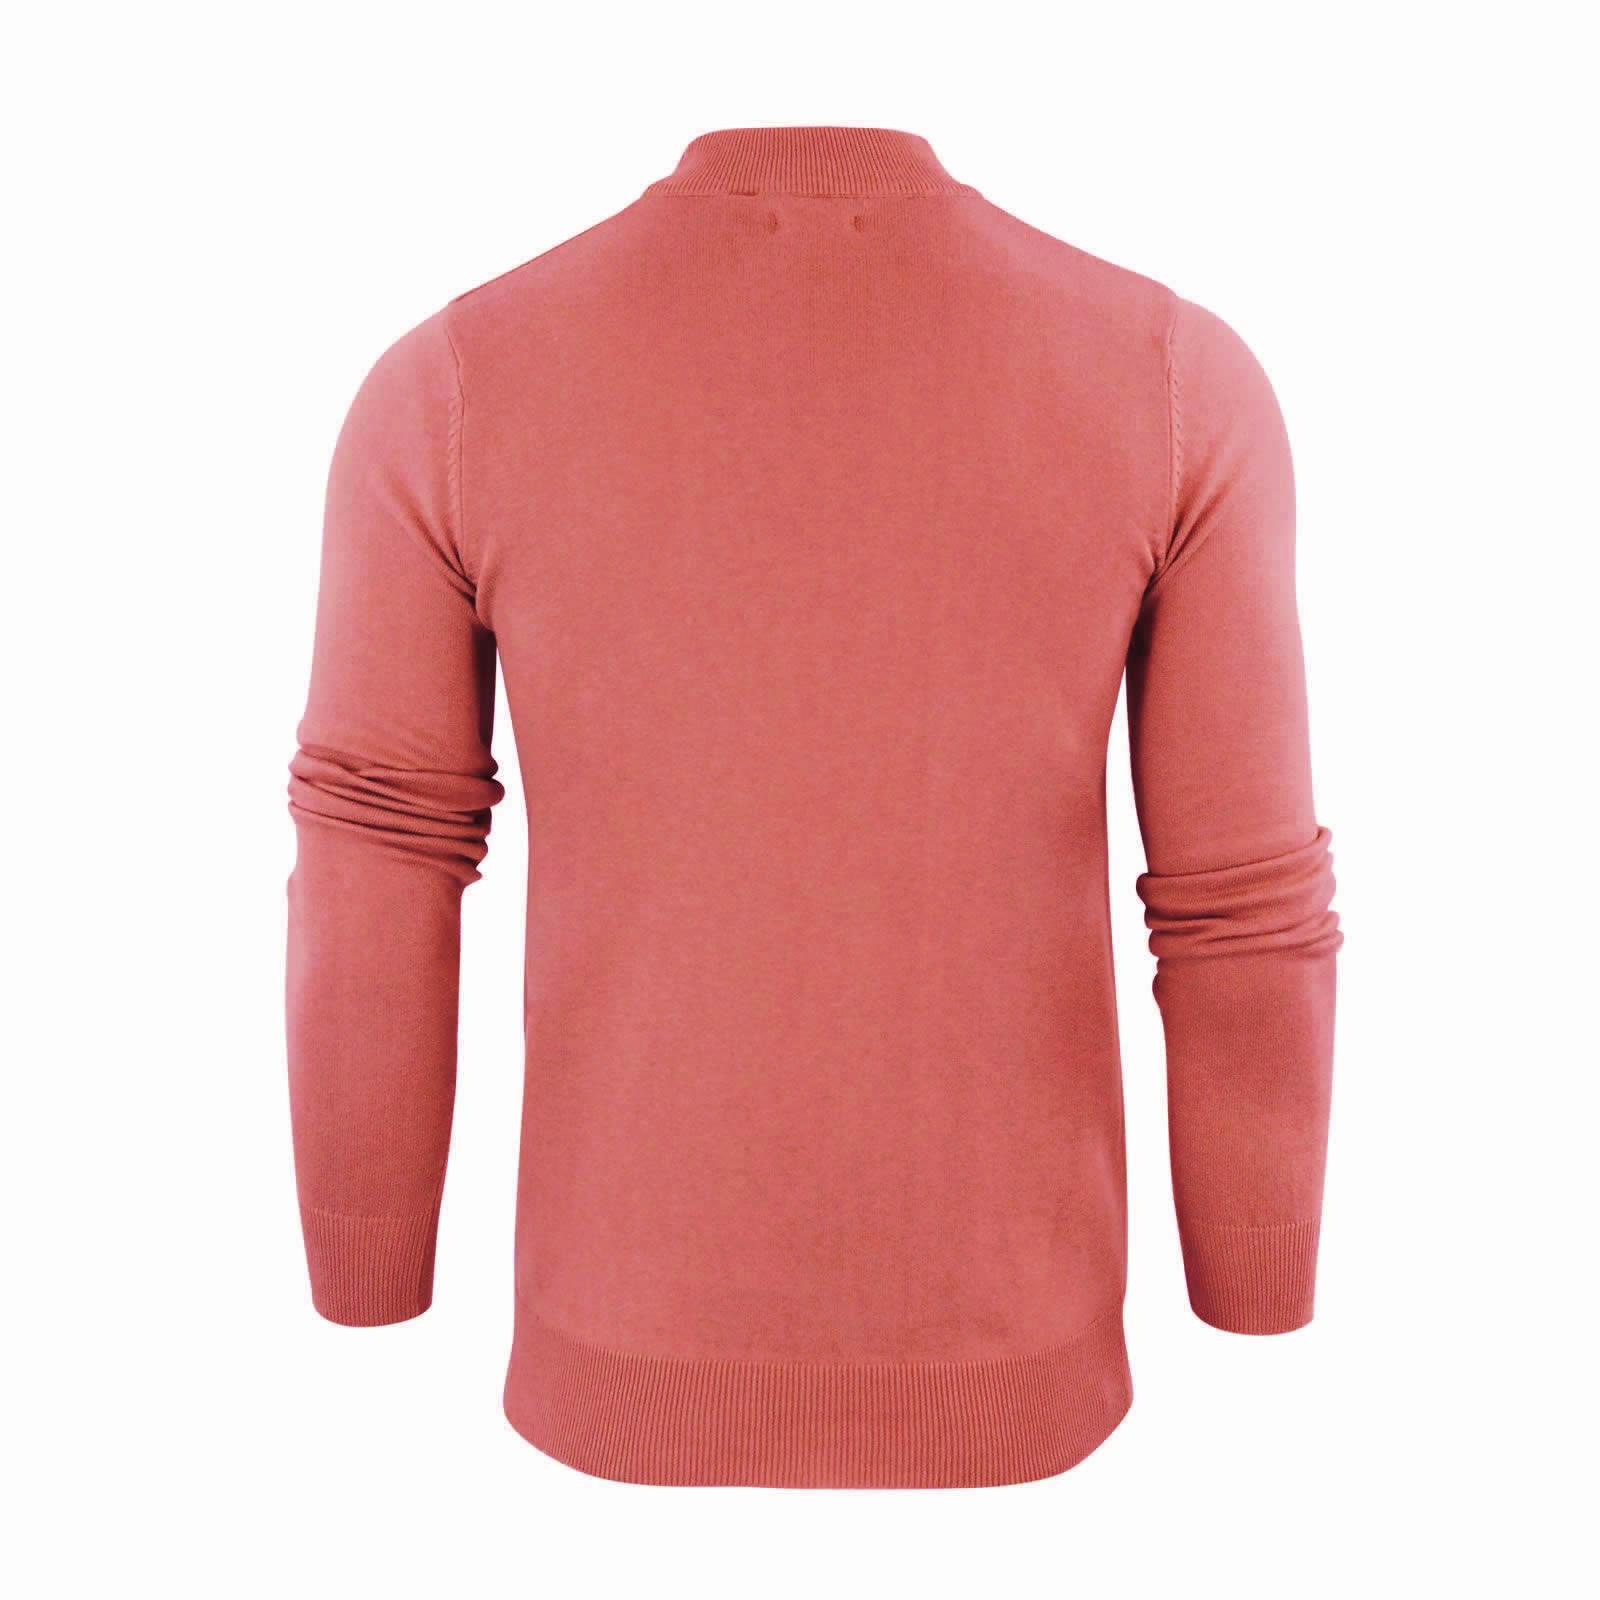 Mens-Jumper-Brave-Soul-Turtle-Neck-Cotton-Pull-Over-Sweater thumbnail 32